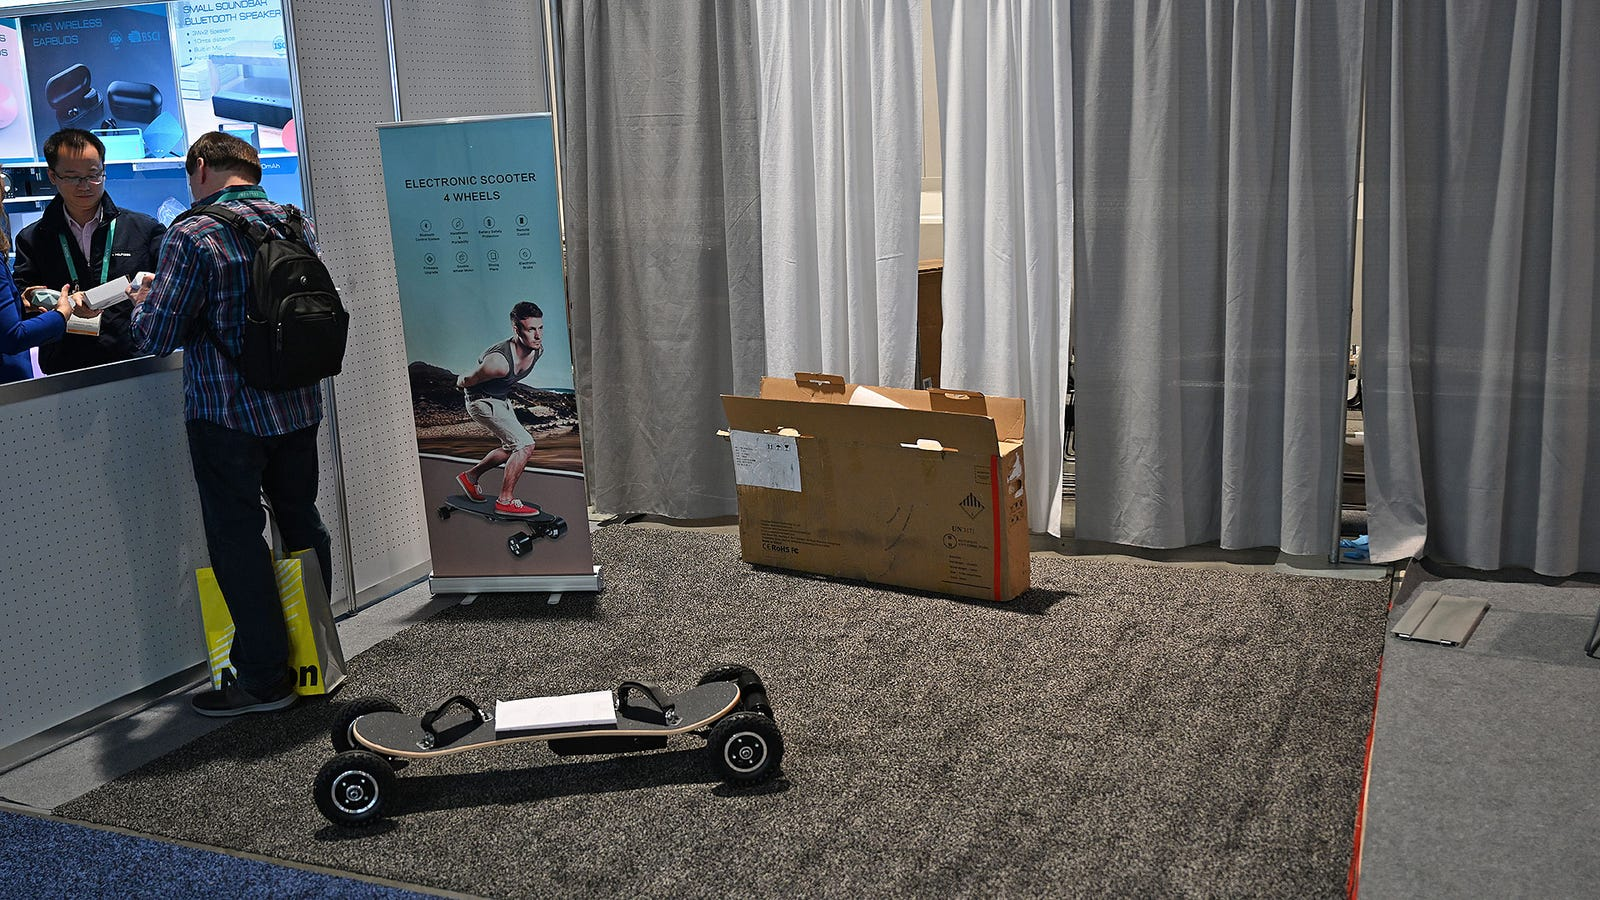 The saddest booth at CES 2020 courtesy of Ogrand Industrial Limited.